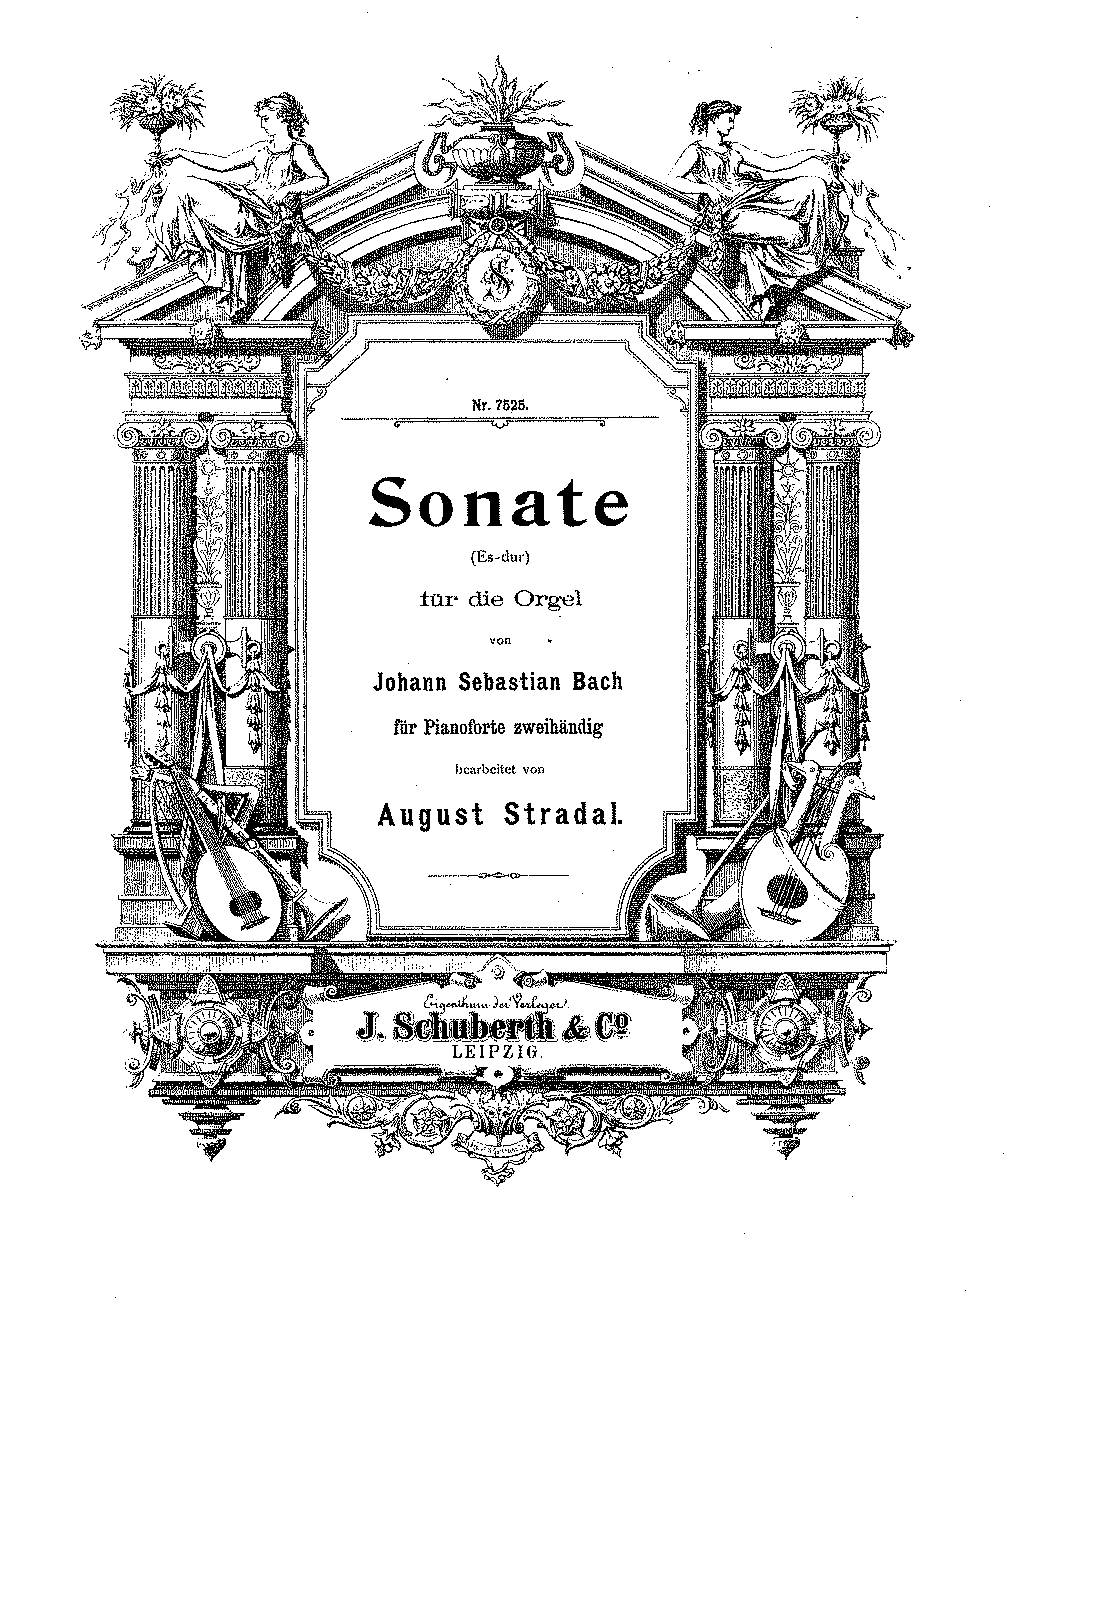 PMLP152880-Bach-Stradal Trio Sonata No1 in E-flat major BWV525.PDF